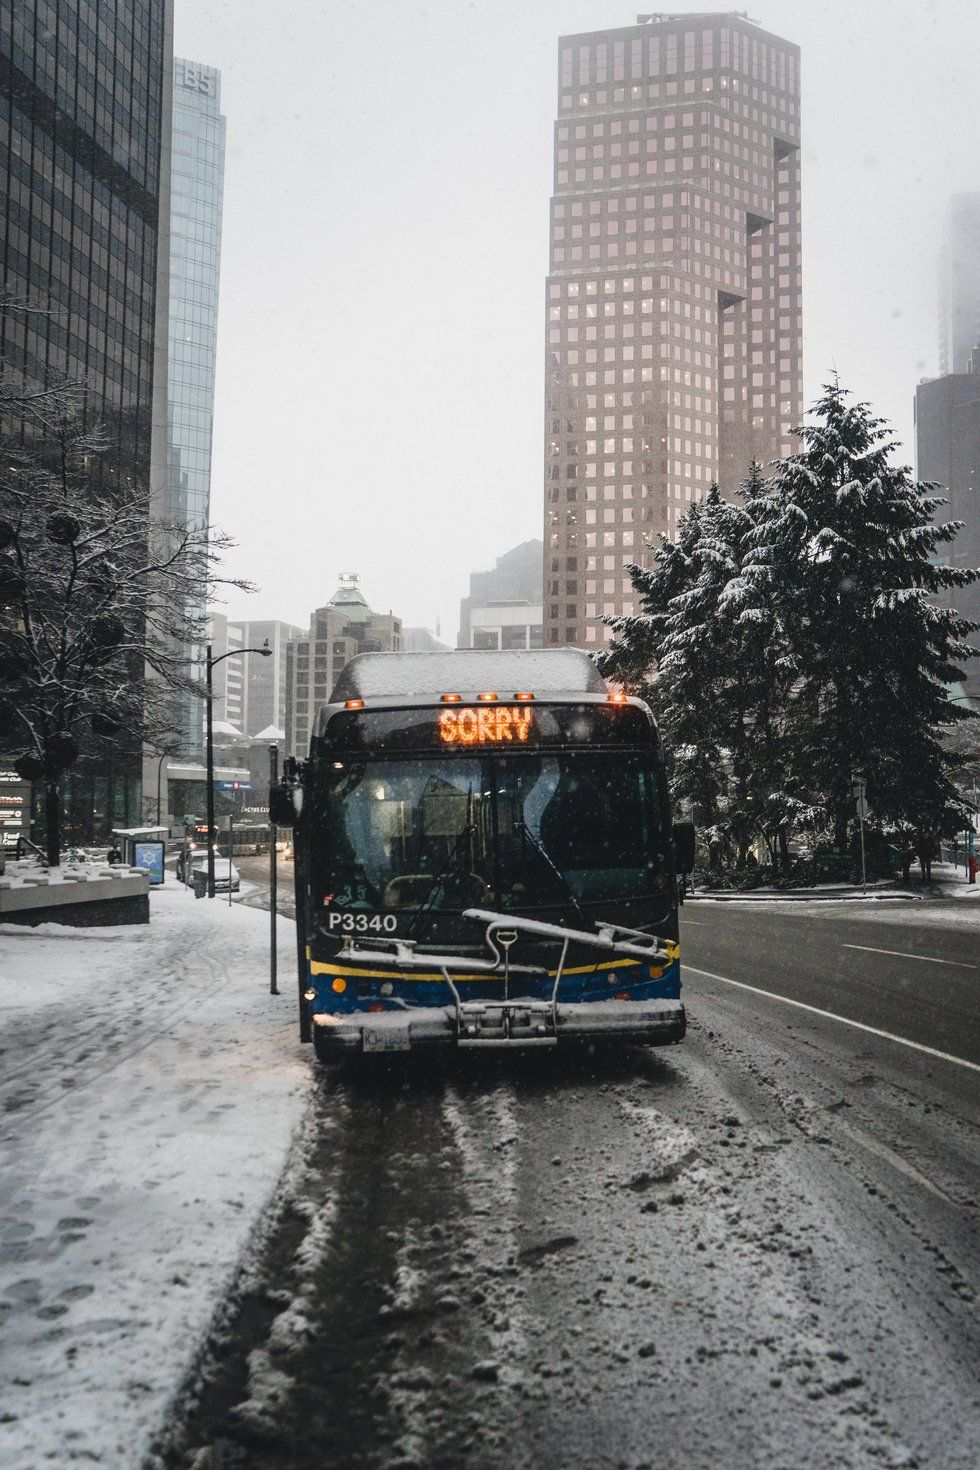 Bus in a cityscape with the word sorry on its destination sign.